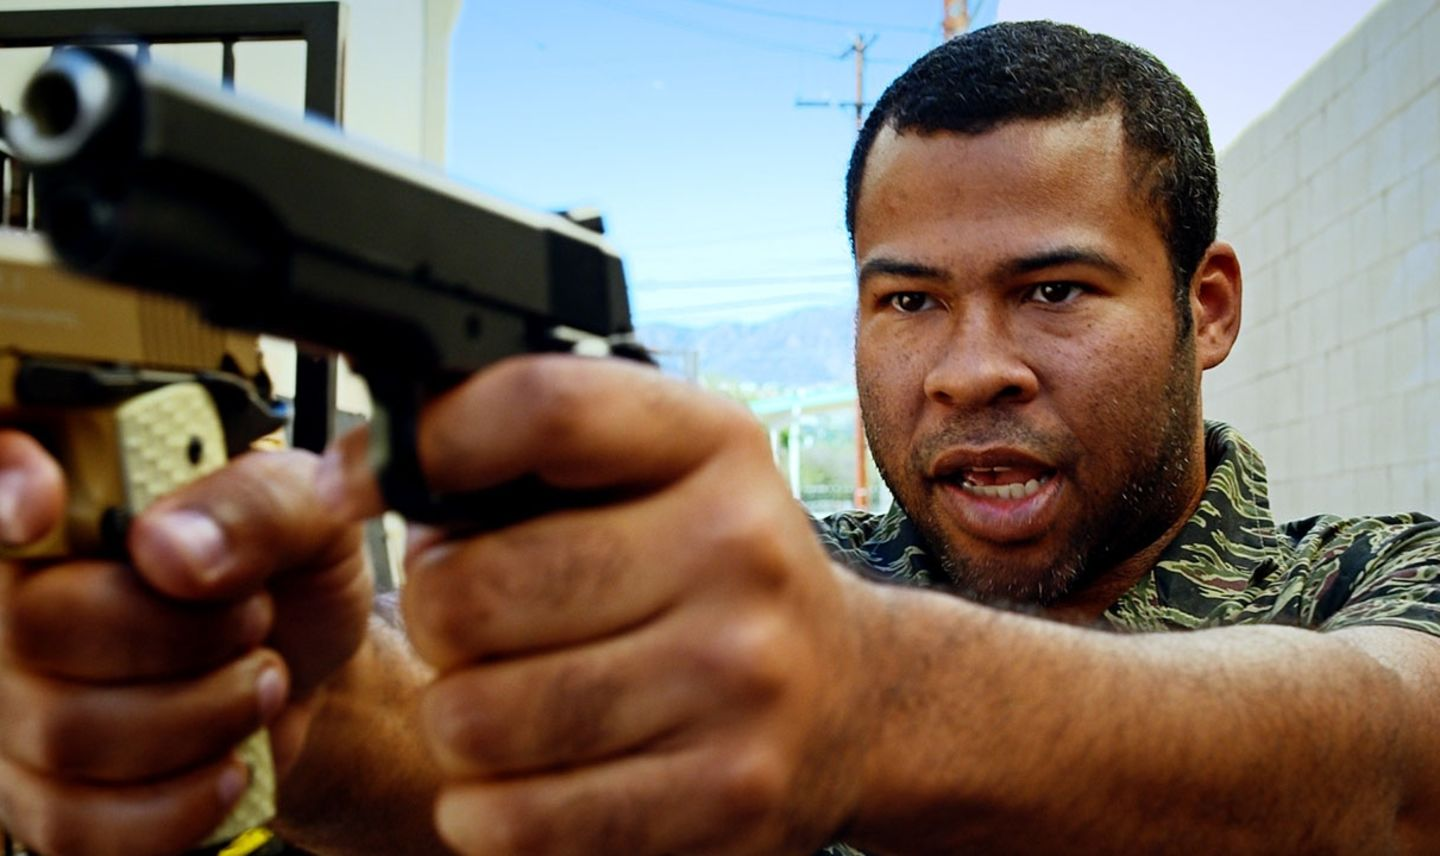 Key & Peele's Jordan Peele Takes Aim At Playboy's Lucky 7 Questions: Jordan Peele